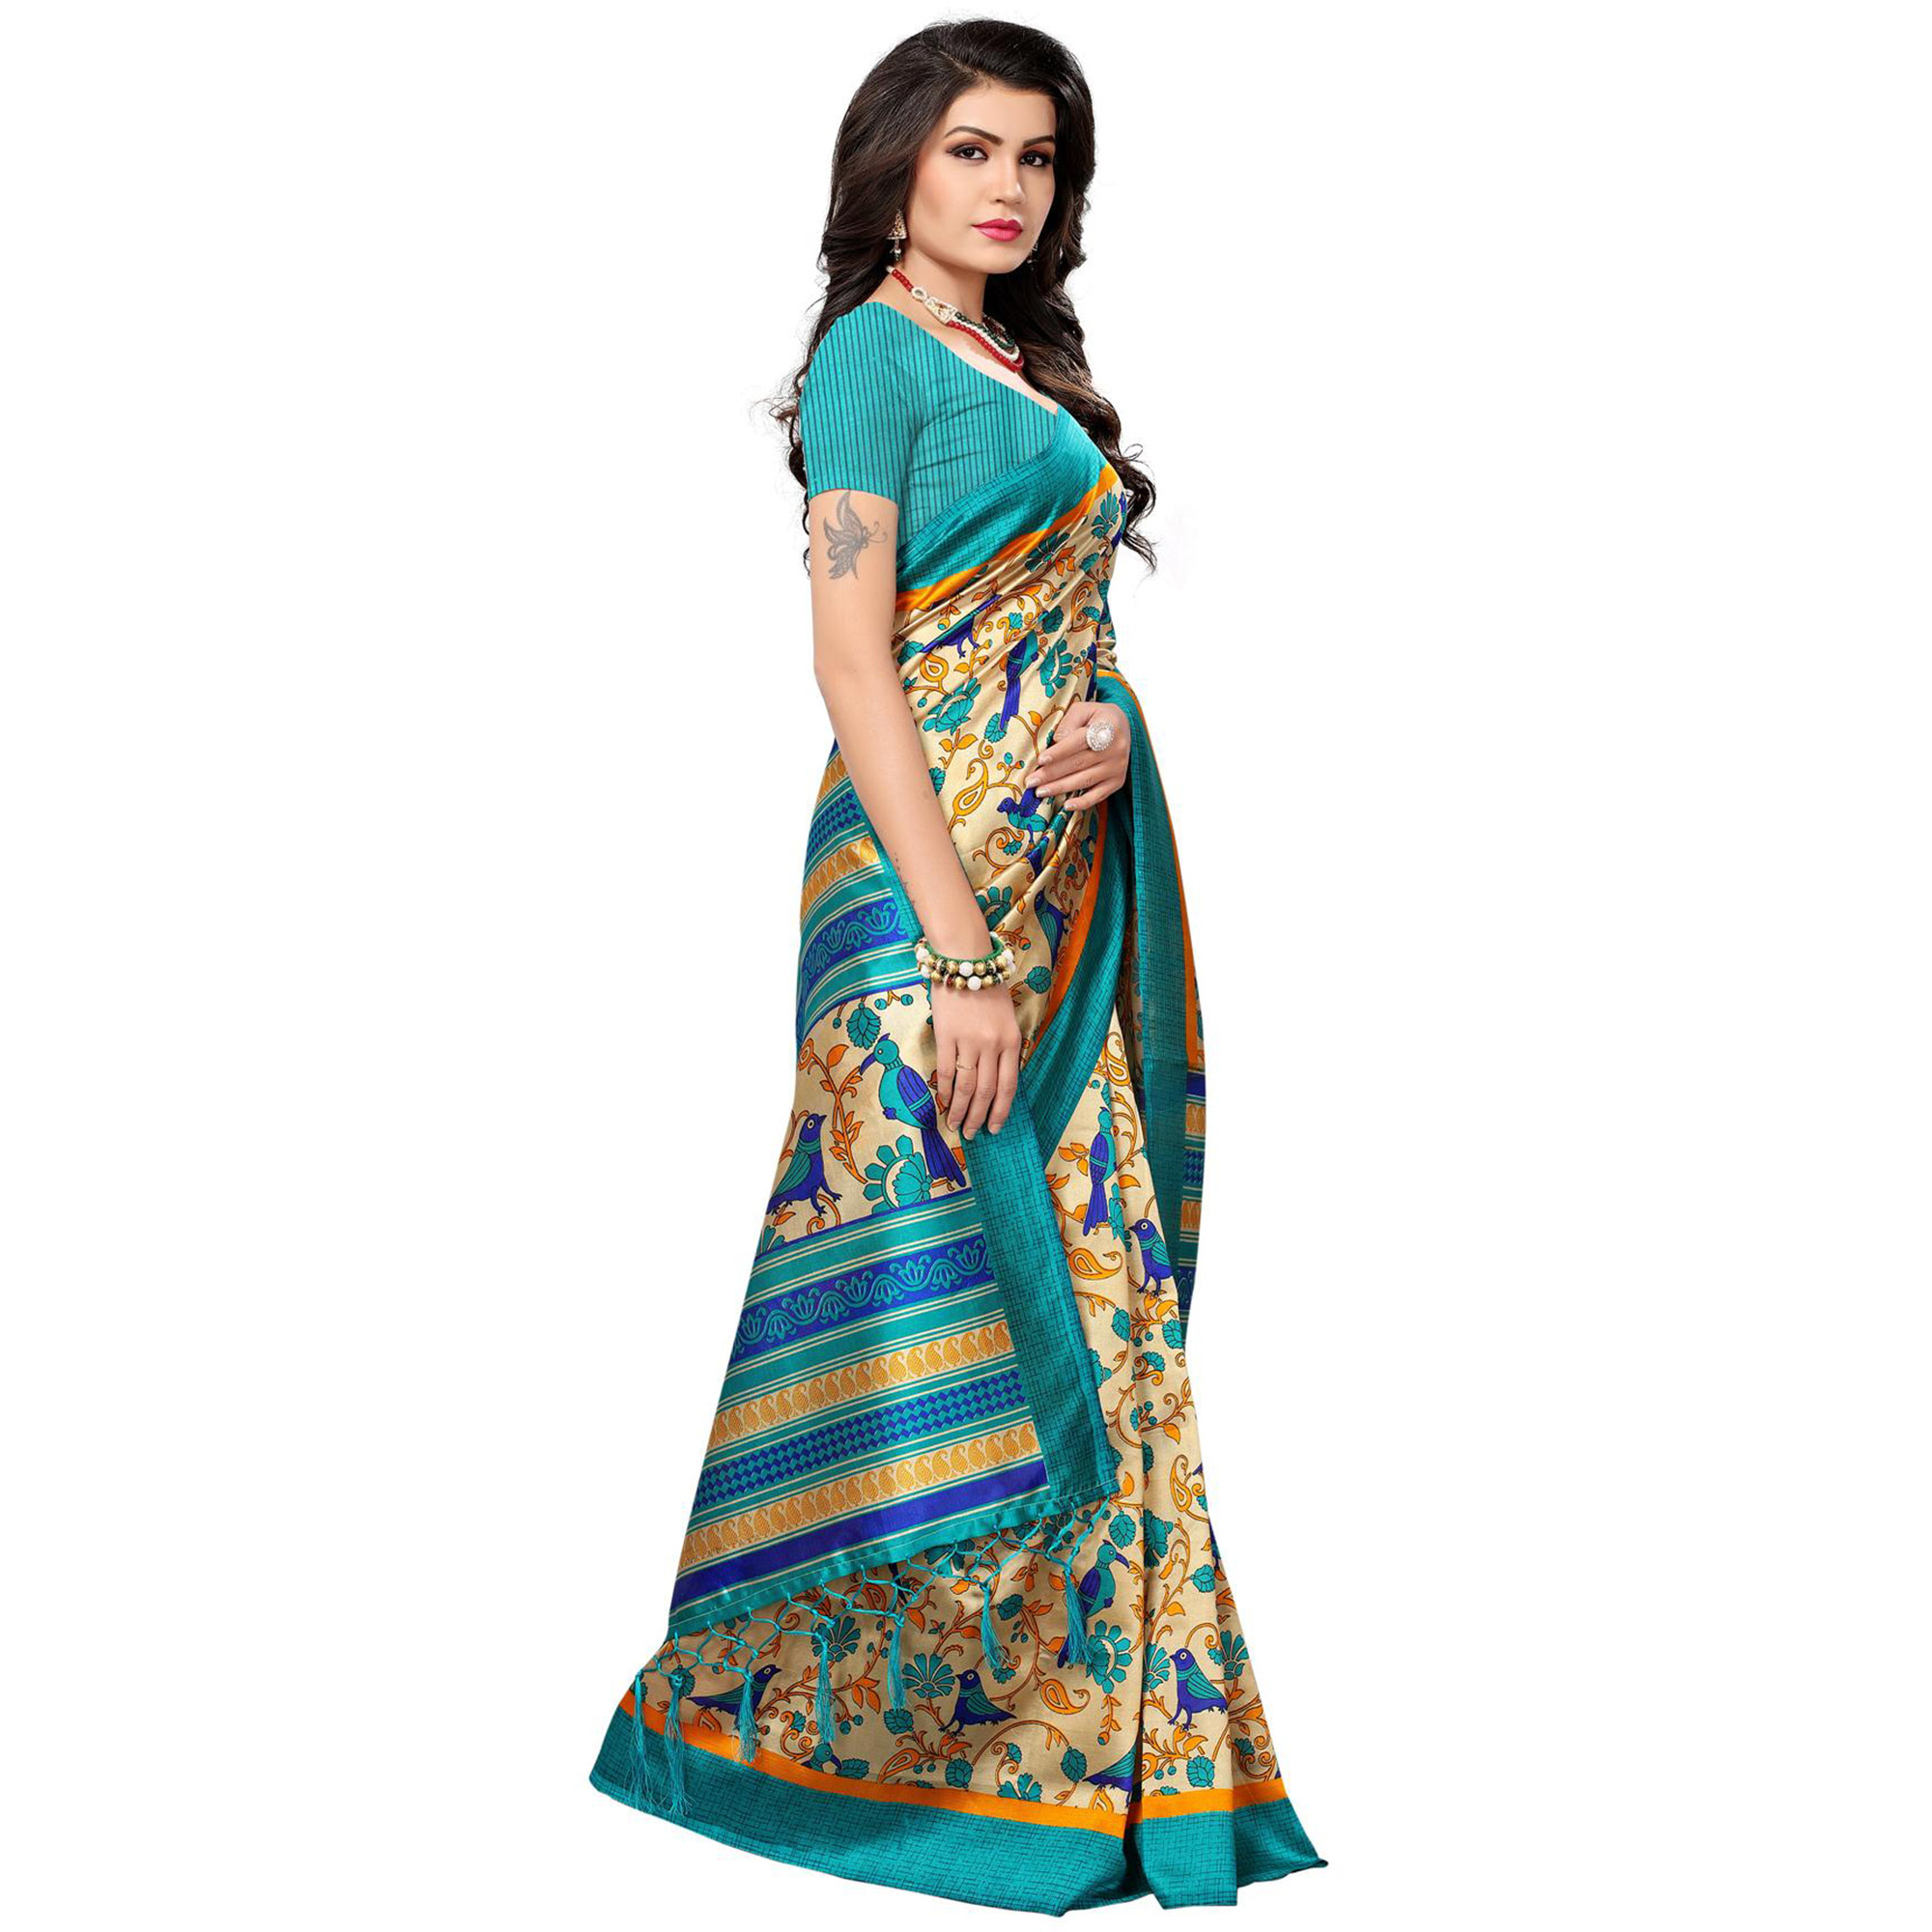 Jazzy Beige-Light Blue Colored Festive Wear Printed Mysore Art Silk Saree